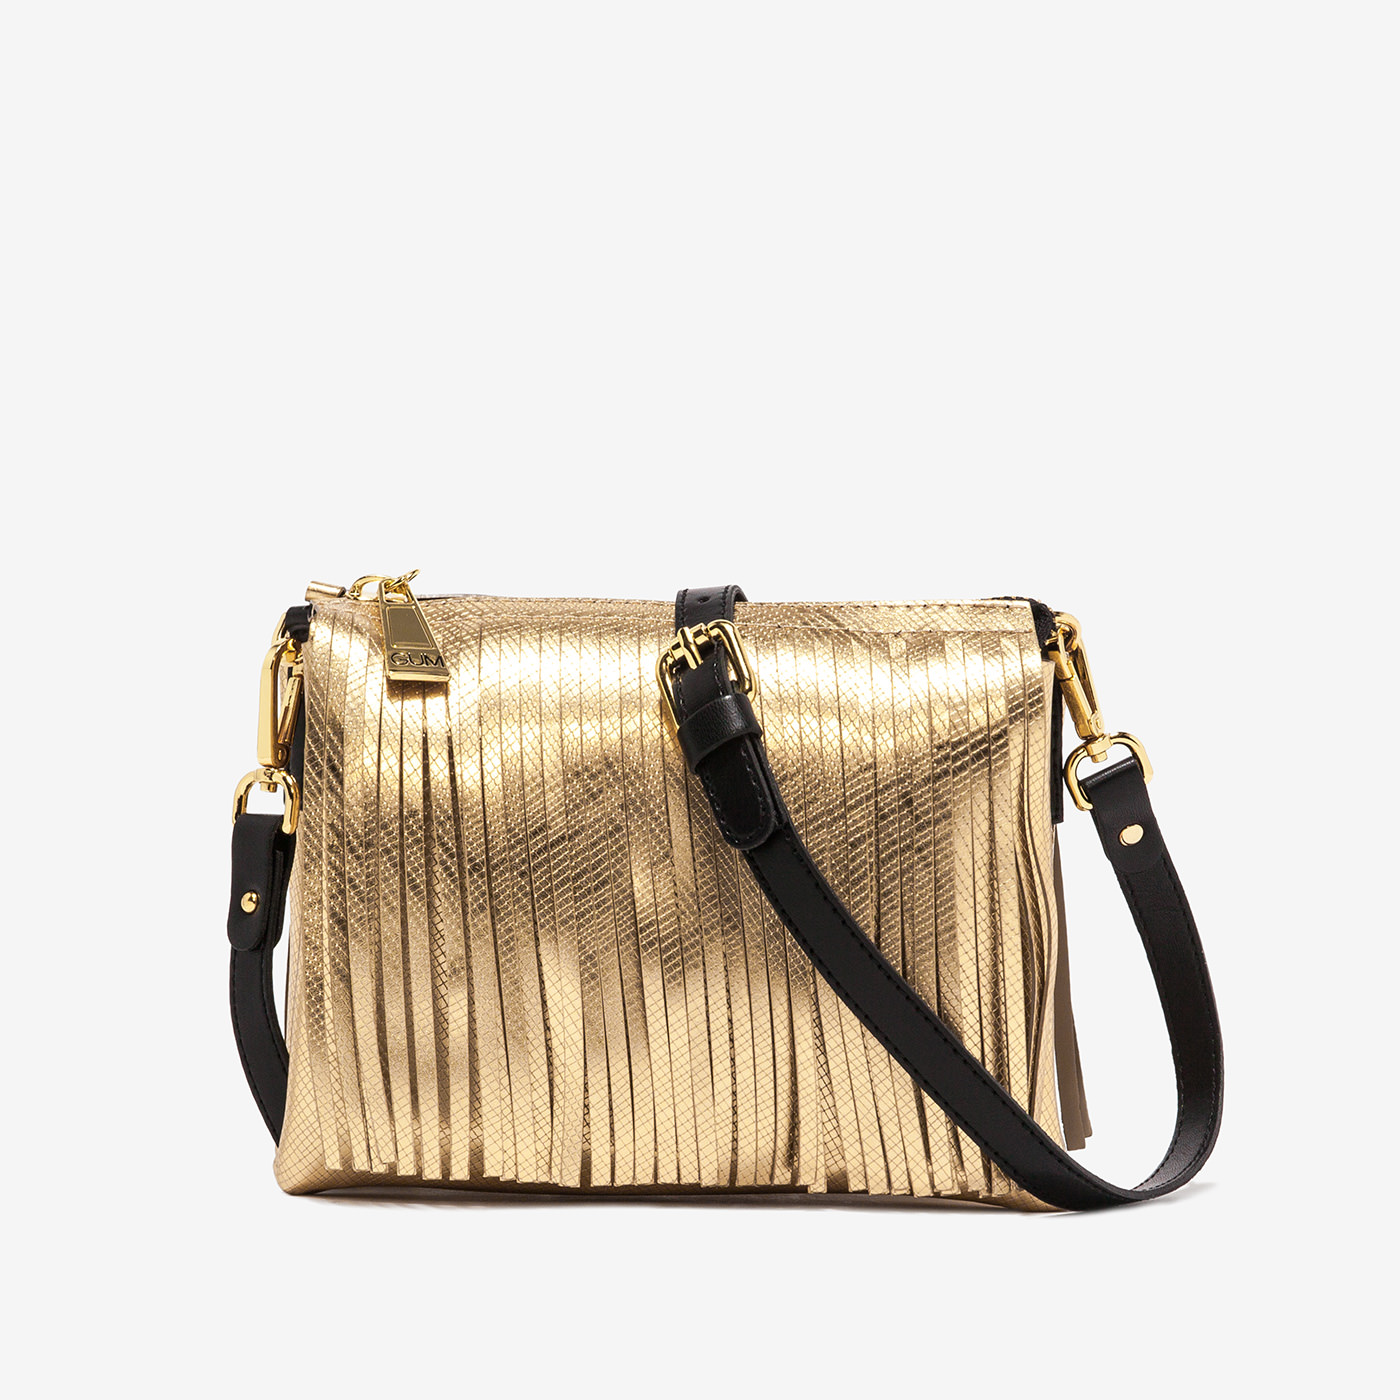 GUM: TWO MINI SHOULDER BAG